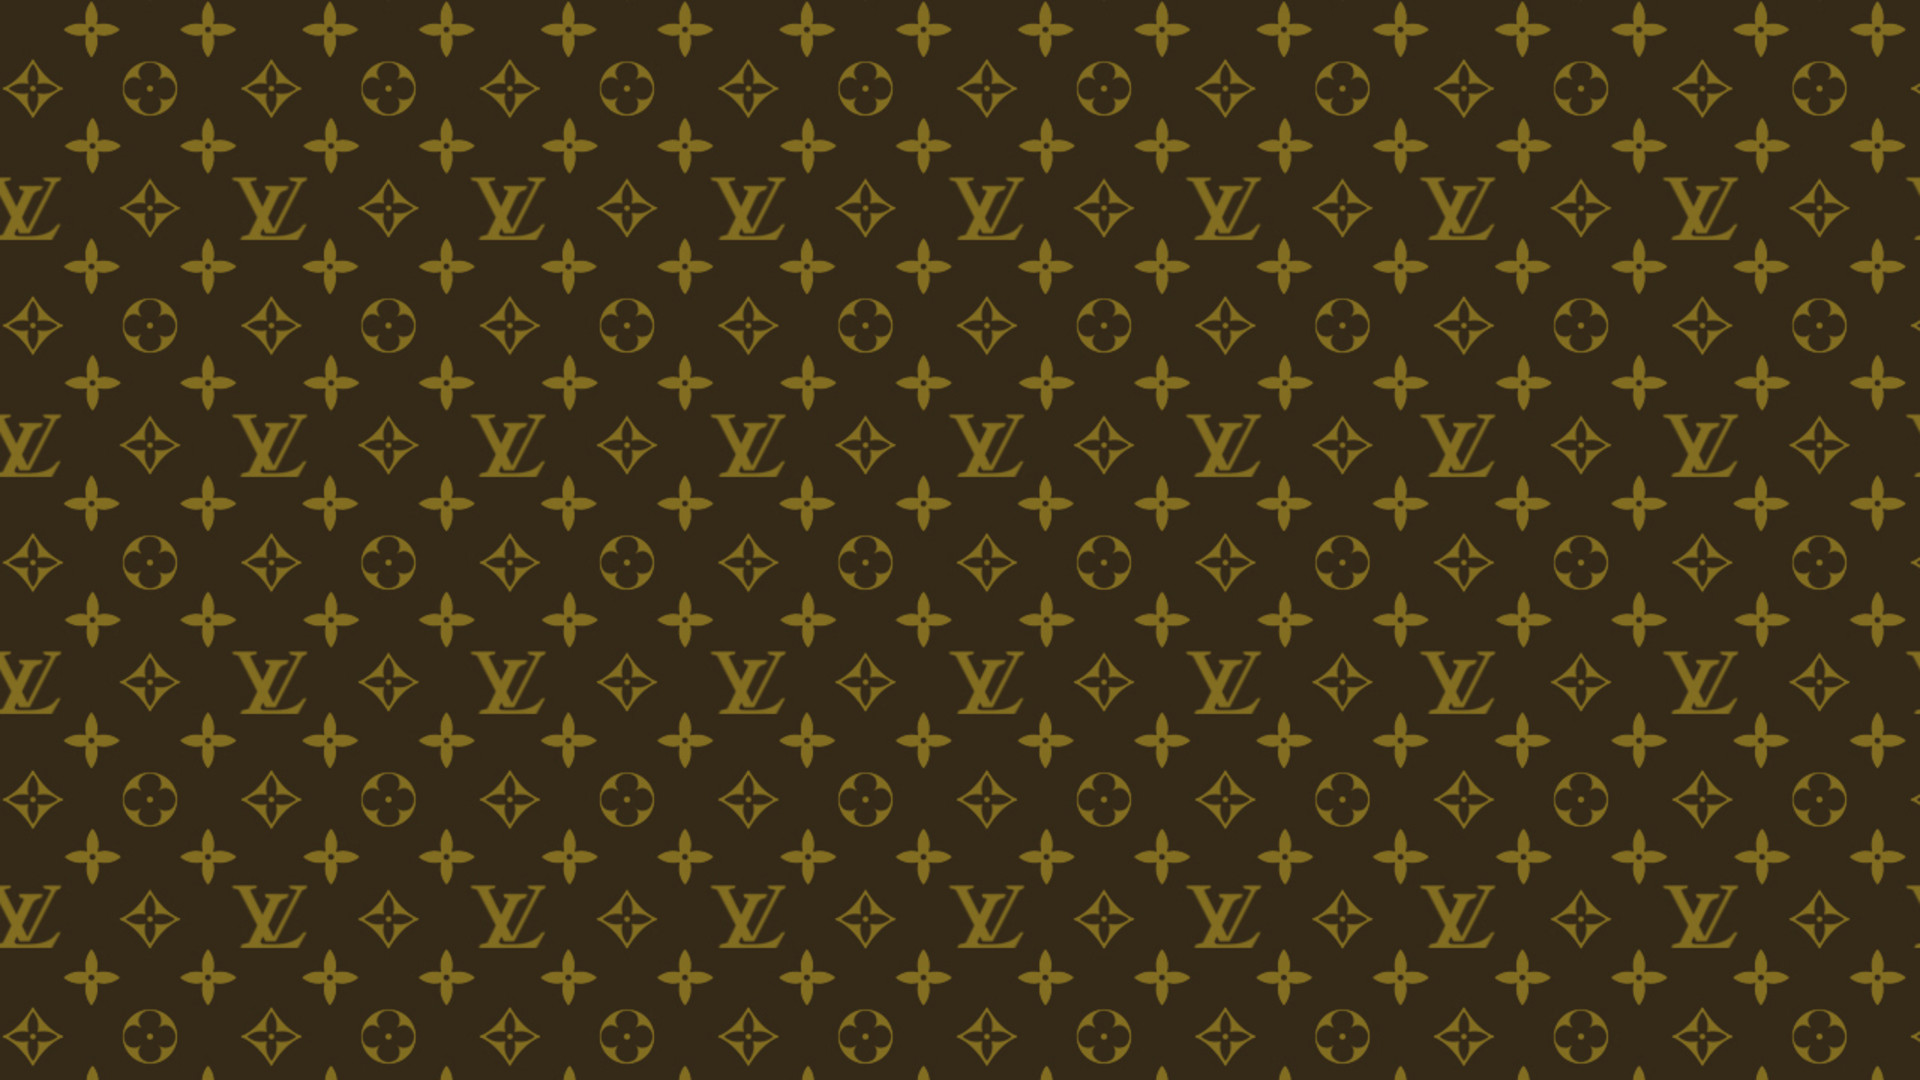 Supreme Louis Vuitton Wallpaper Iphone X City Of Kenmore Washington